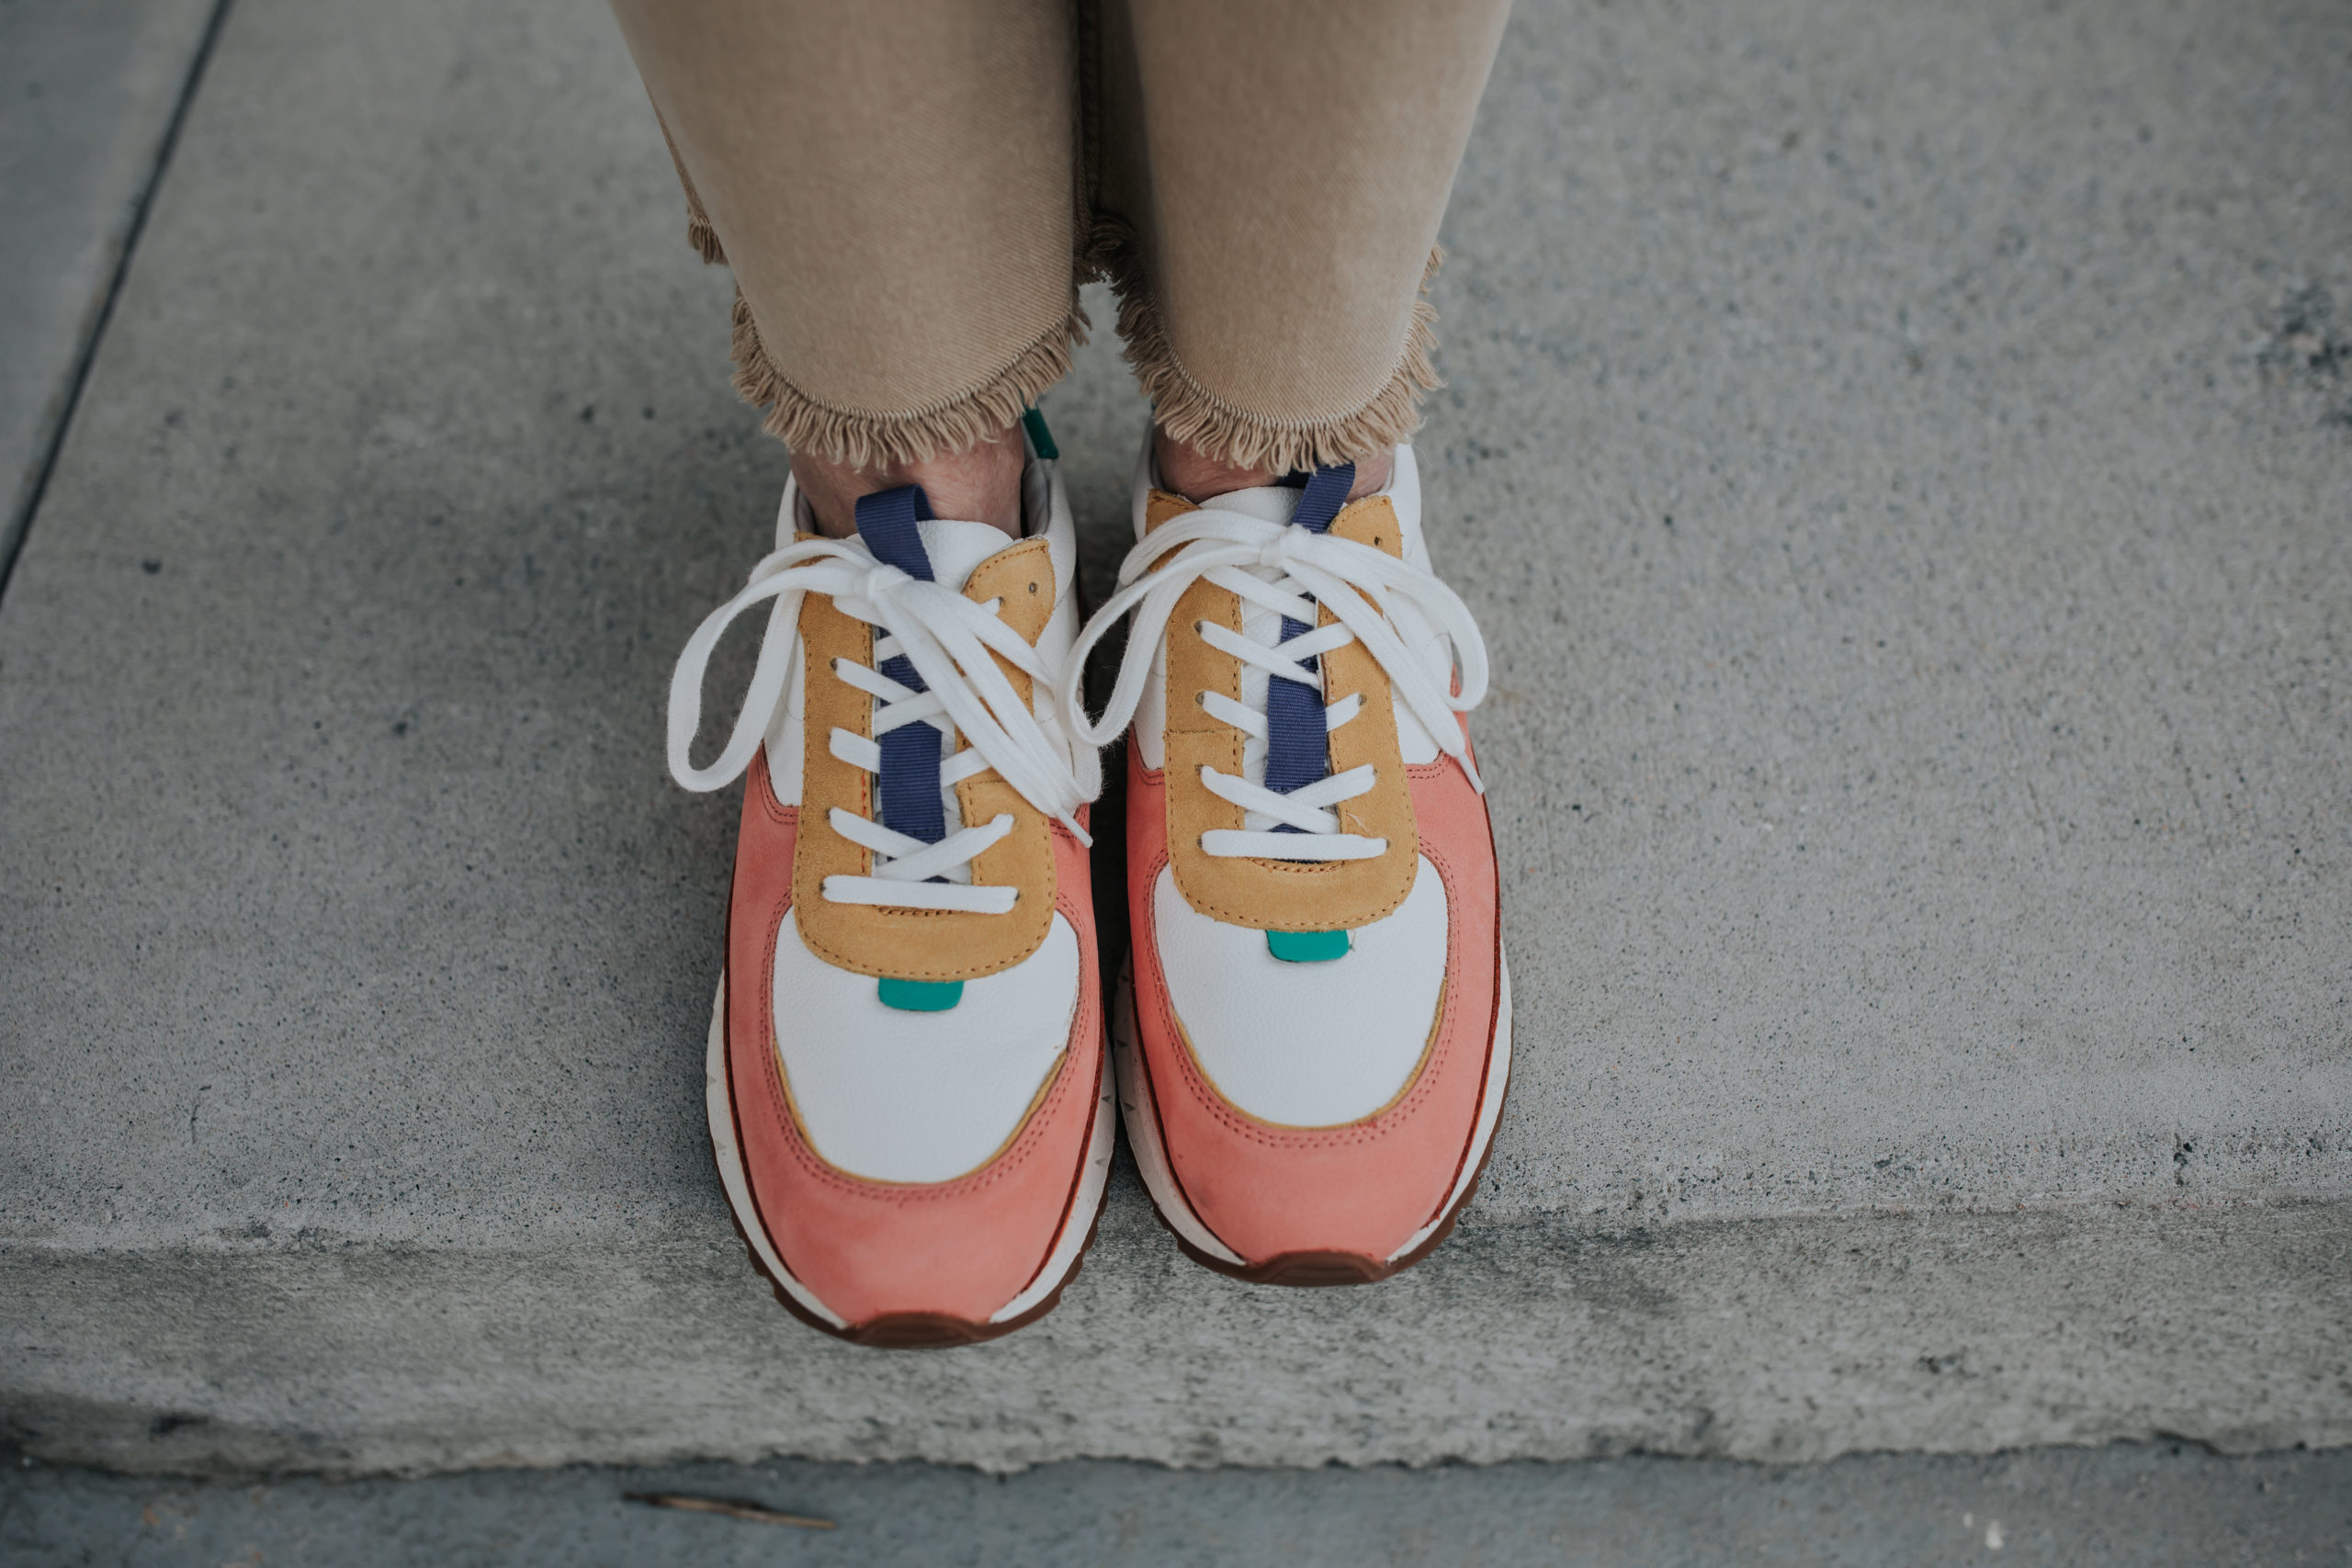 madewell t shirt weekend blue denim longsleeve over the t shirt, blue round oversized sunglasses, color block tennis shoes from madewell and khaki pants paired with a straw purse that features an orange flap and gold embellishments